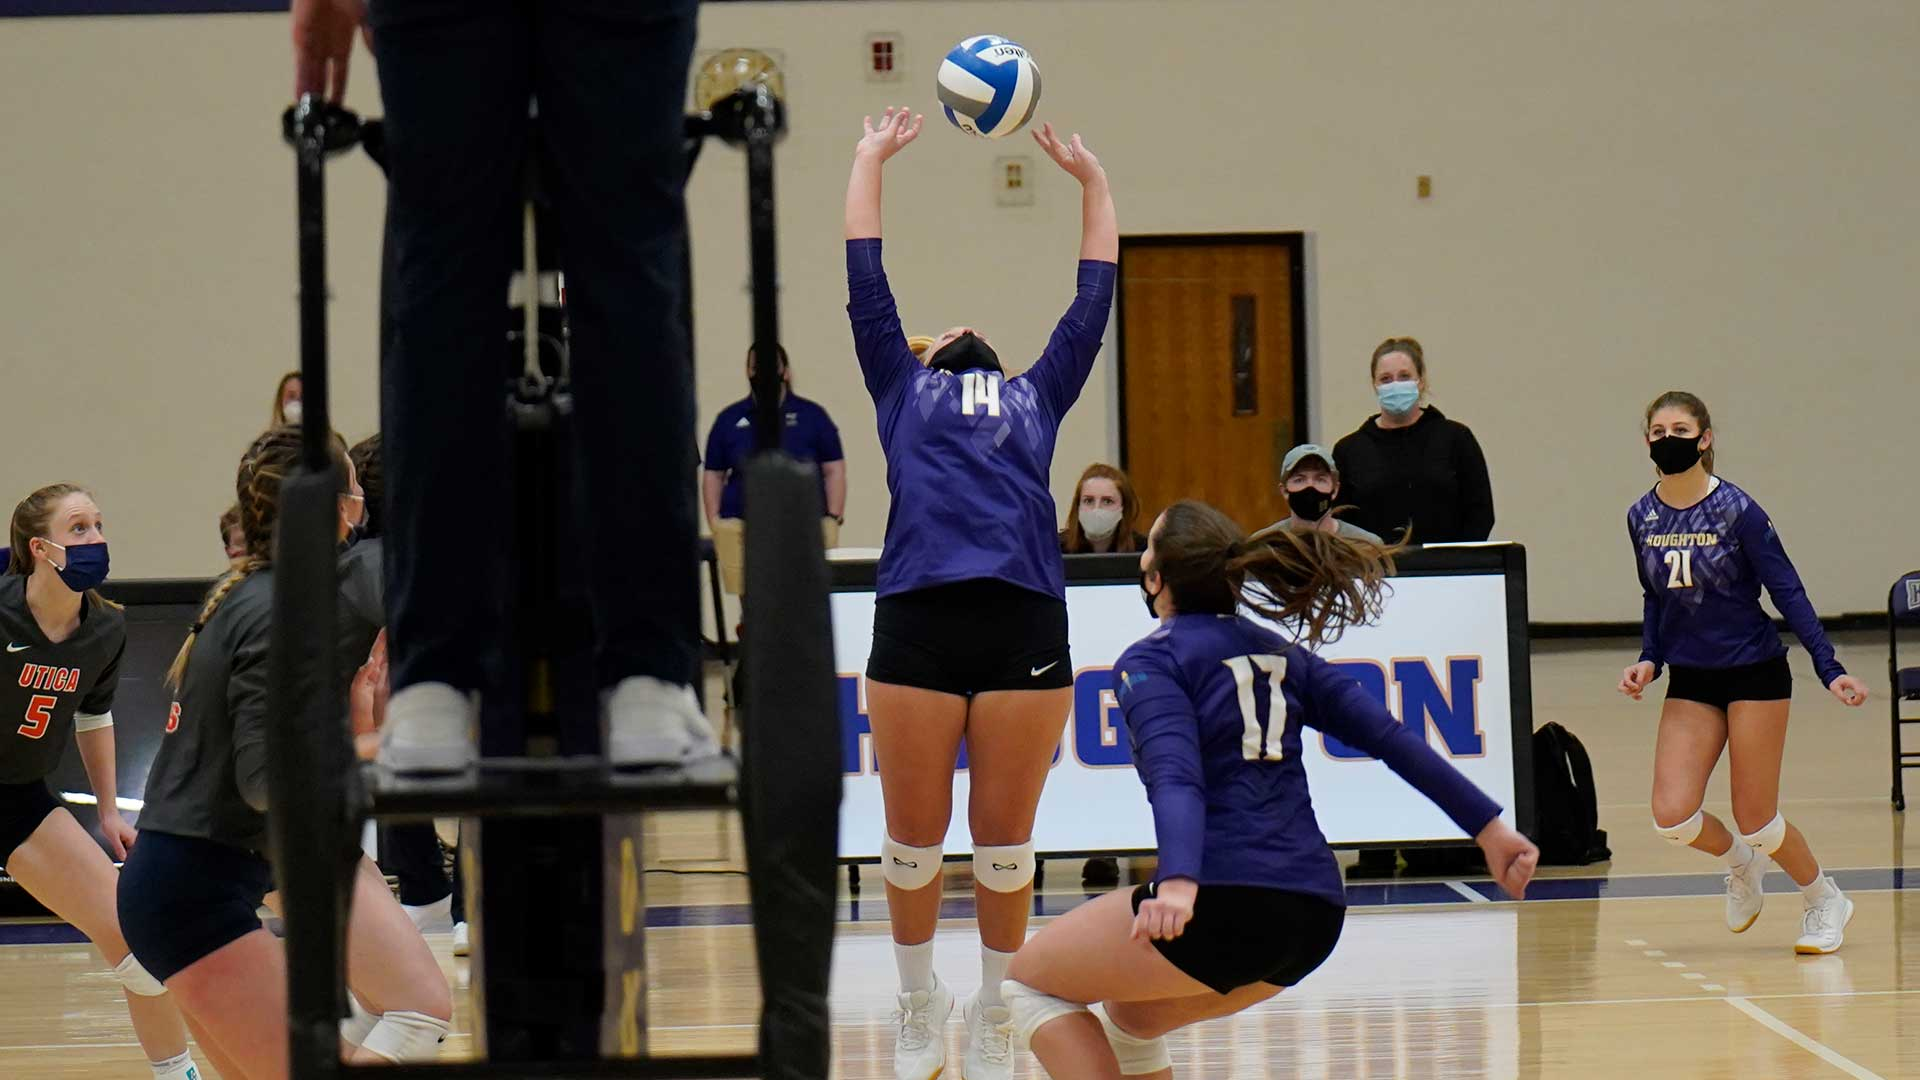 women's volleyball player setting the ball at the net